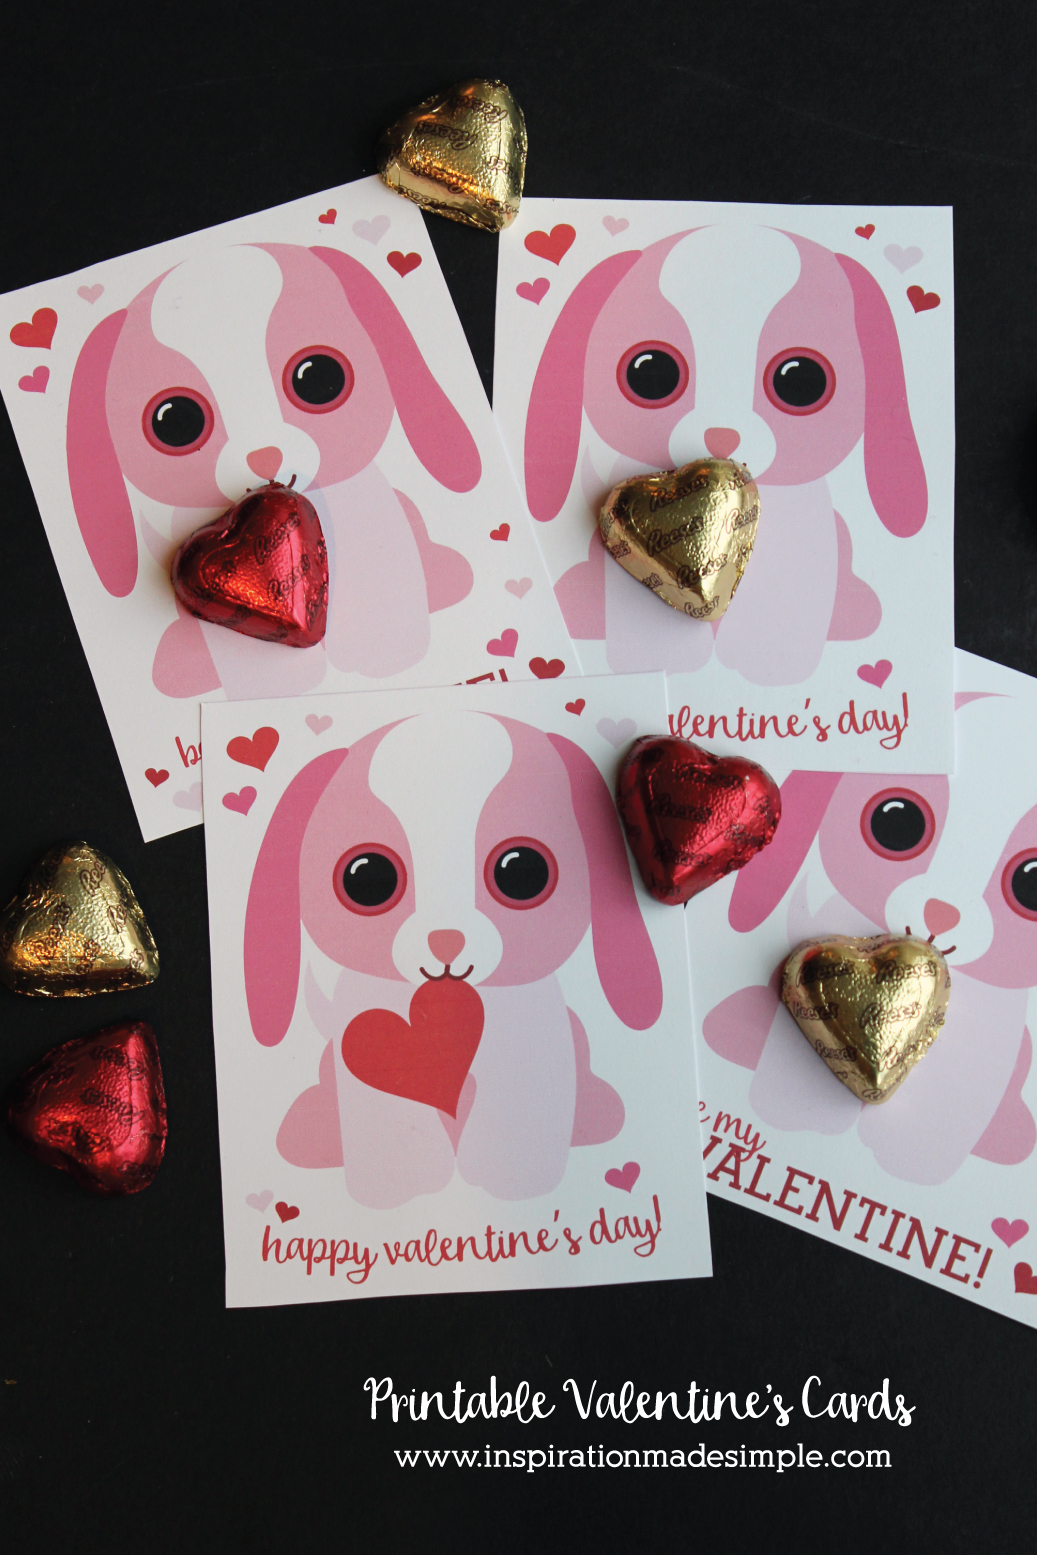 Printable Puppy Valentine's Day Cards